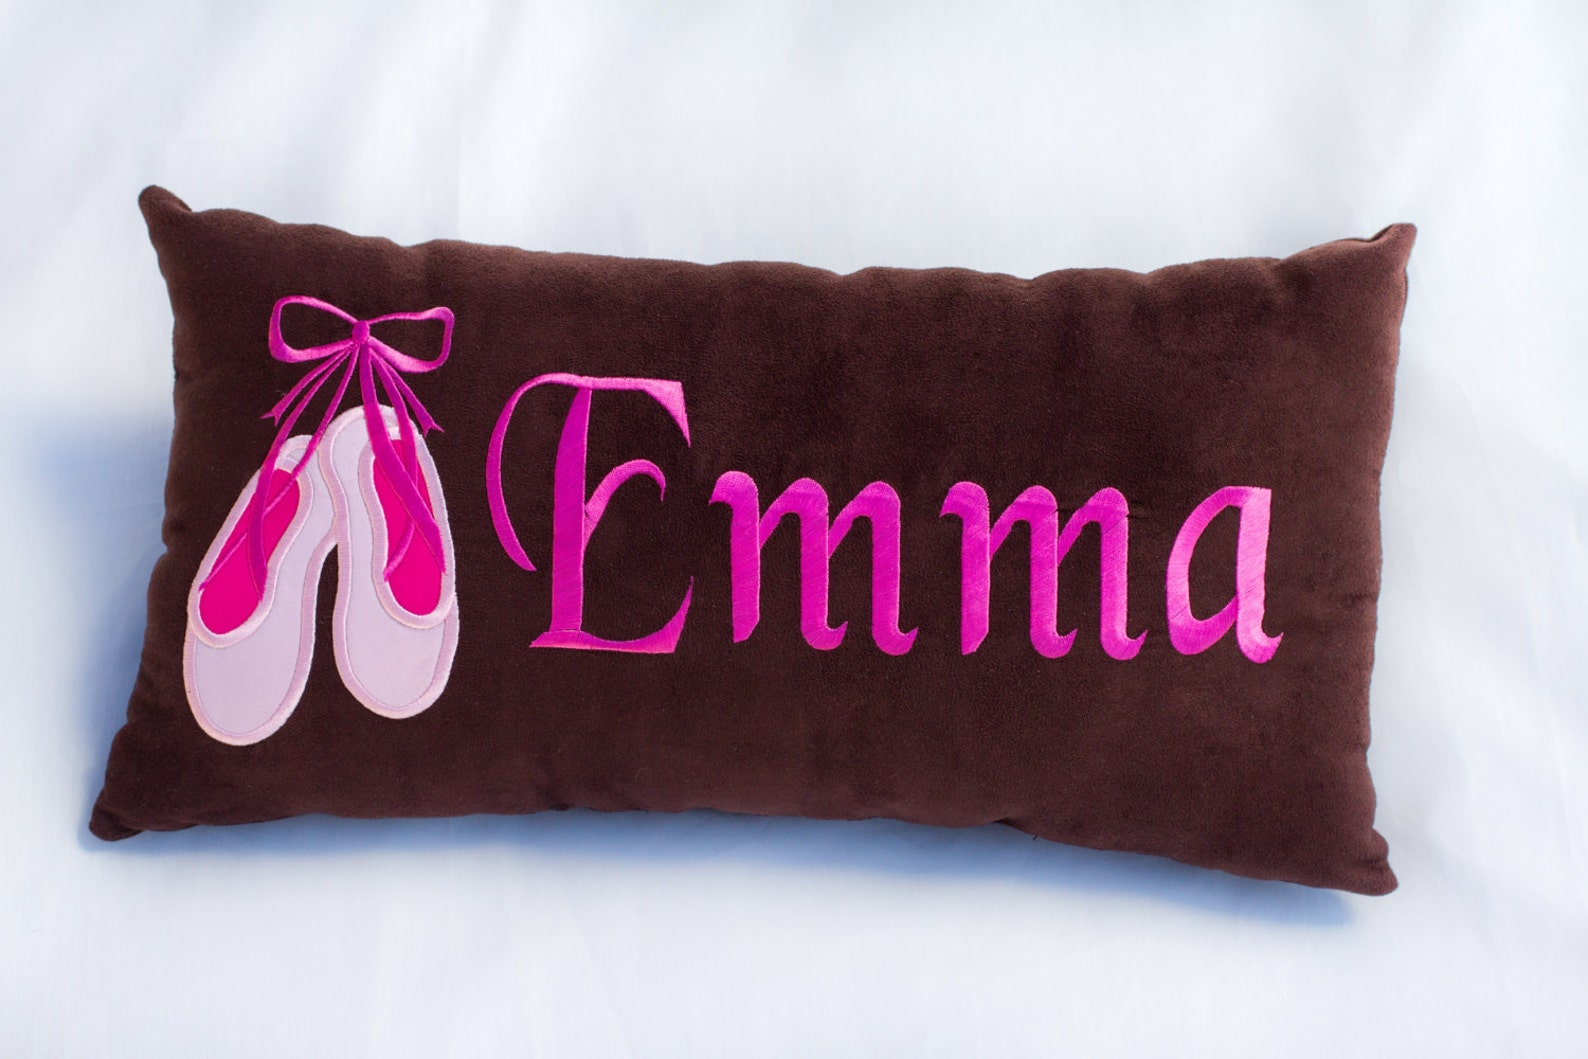 pillow - decorative or travel - with ballet shoes embroidery